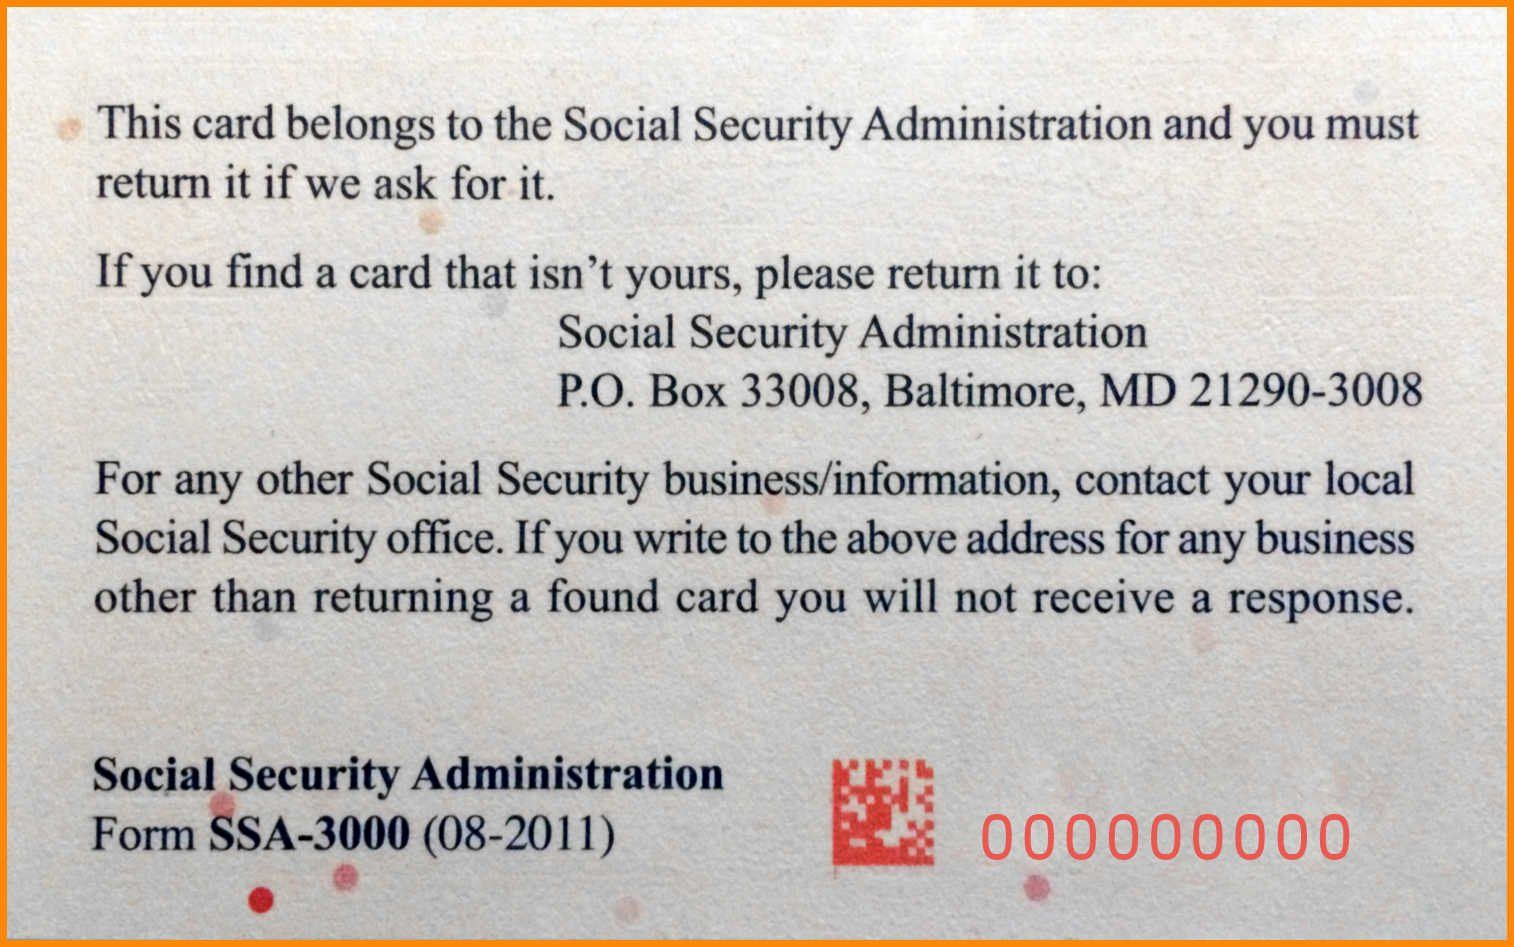 Social Security Card Template Photoshop In 2020 Card Template